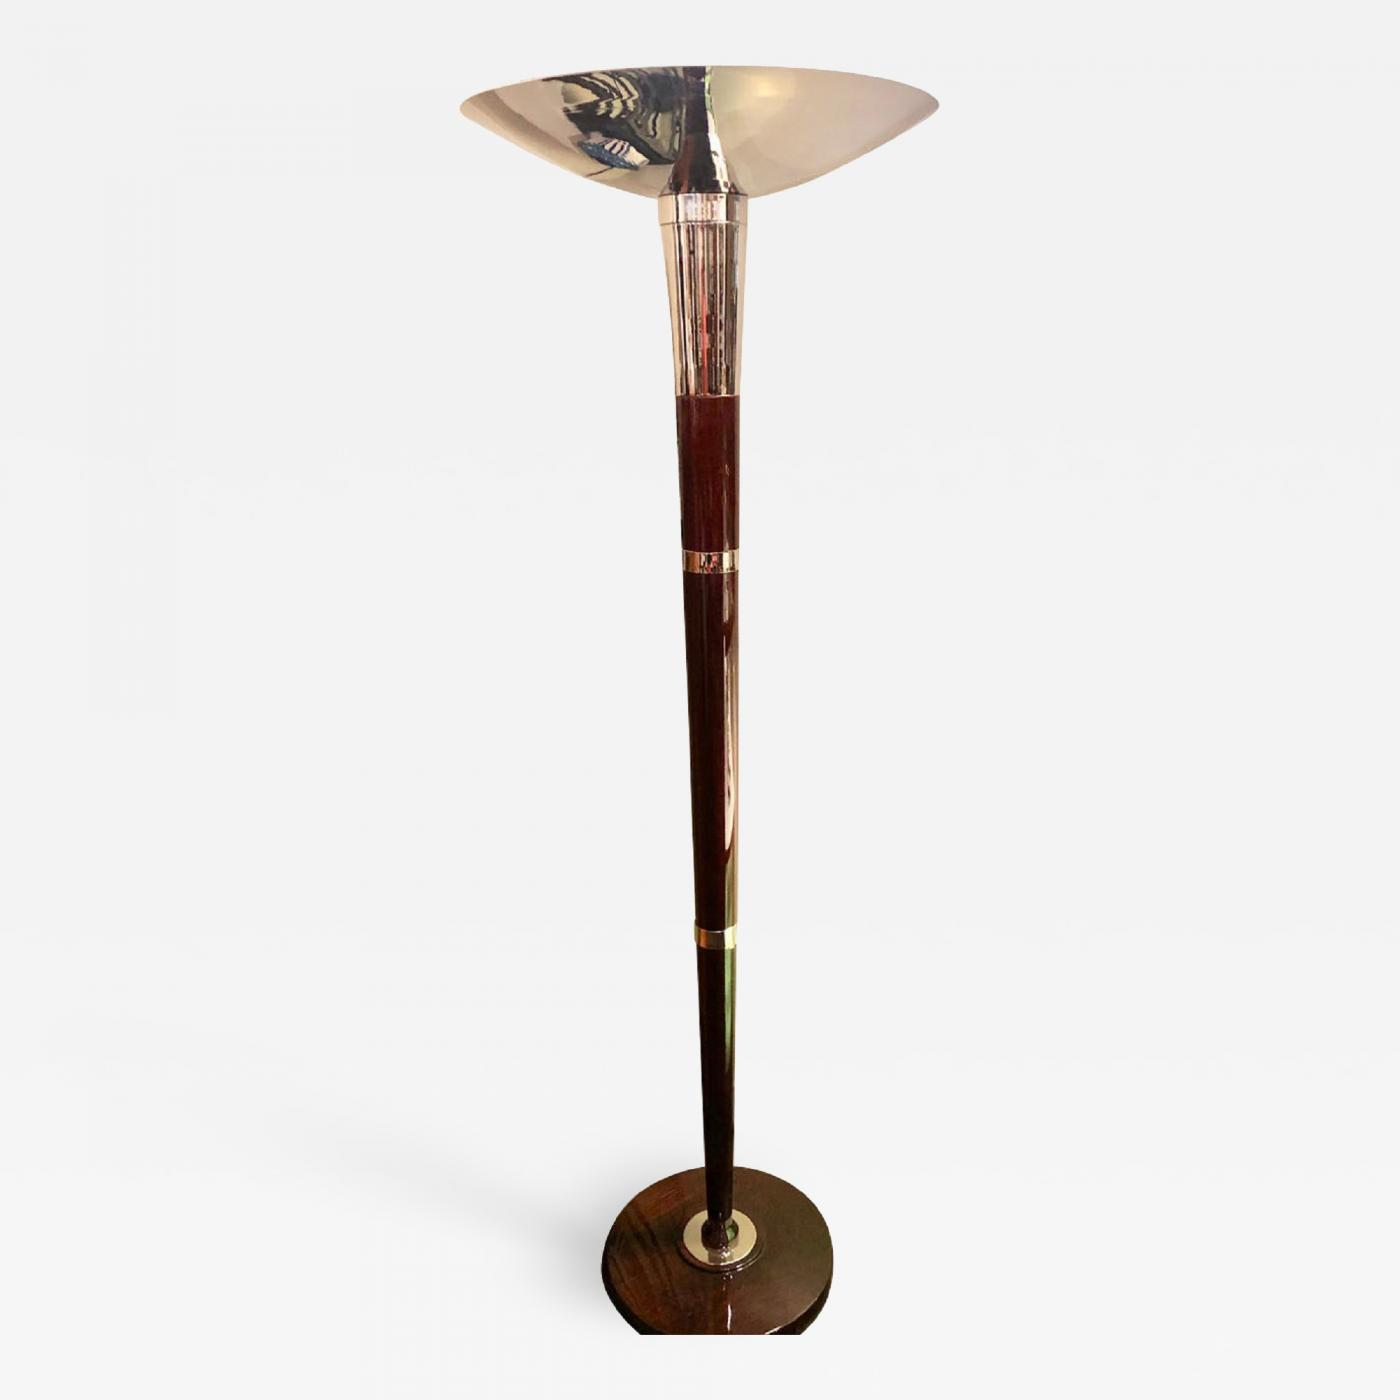 French Style Art Deco Floor Lamp Torchiere Wood And Chrome